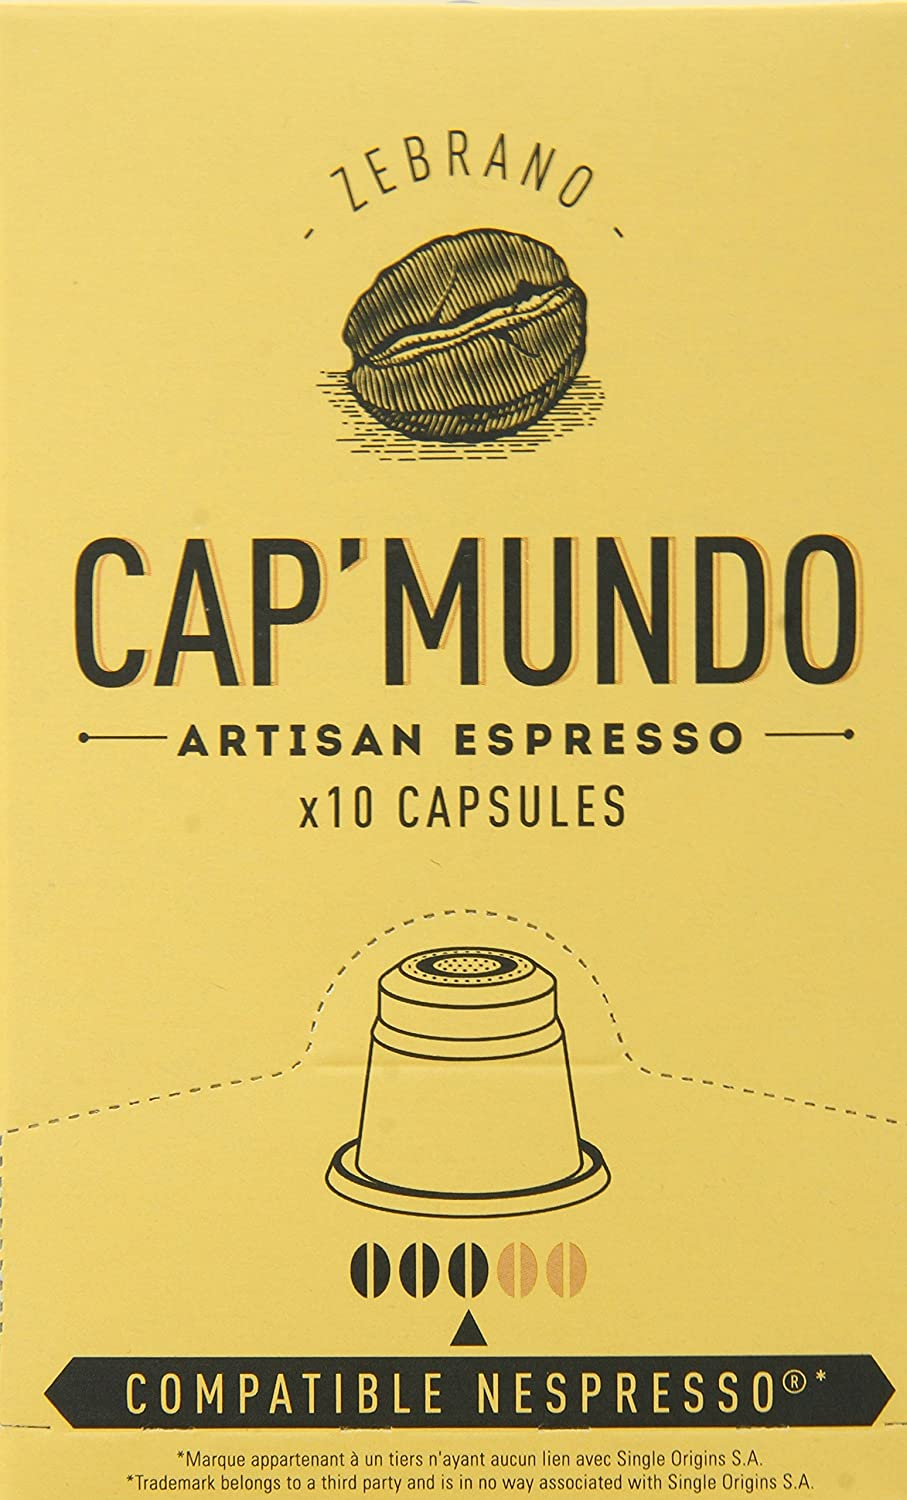 Cap Mundo Single-Cup Coffee for Nespresso Brewers, Ebene, 10 Count (Pack of 6): Amazon.com: Grocery & Gourmet Food